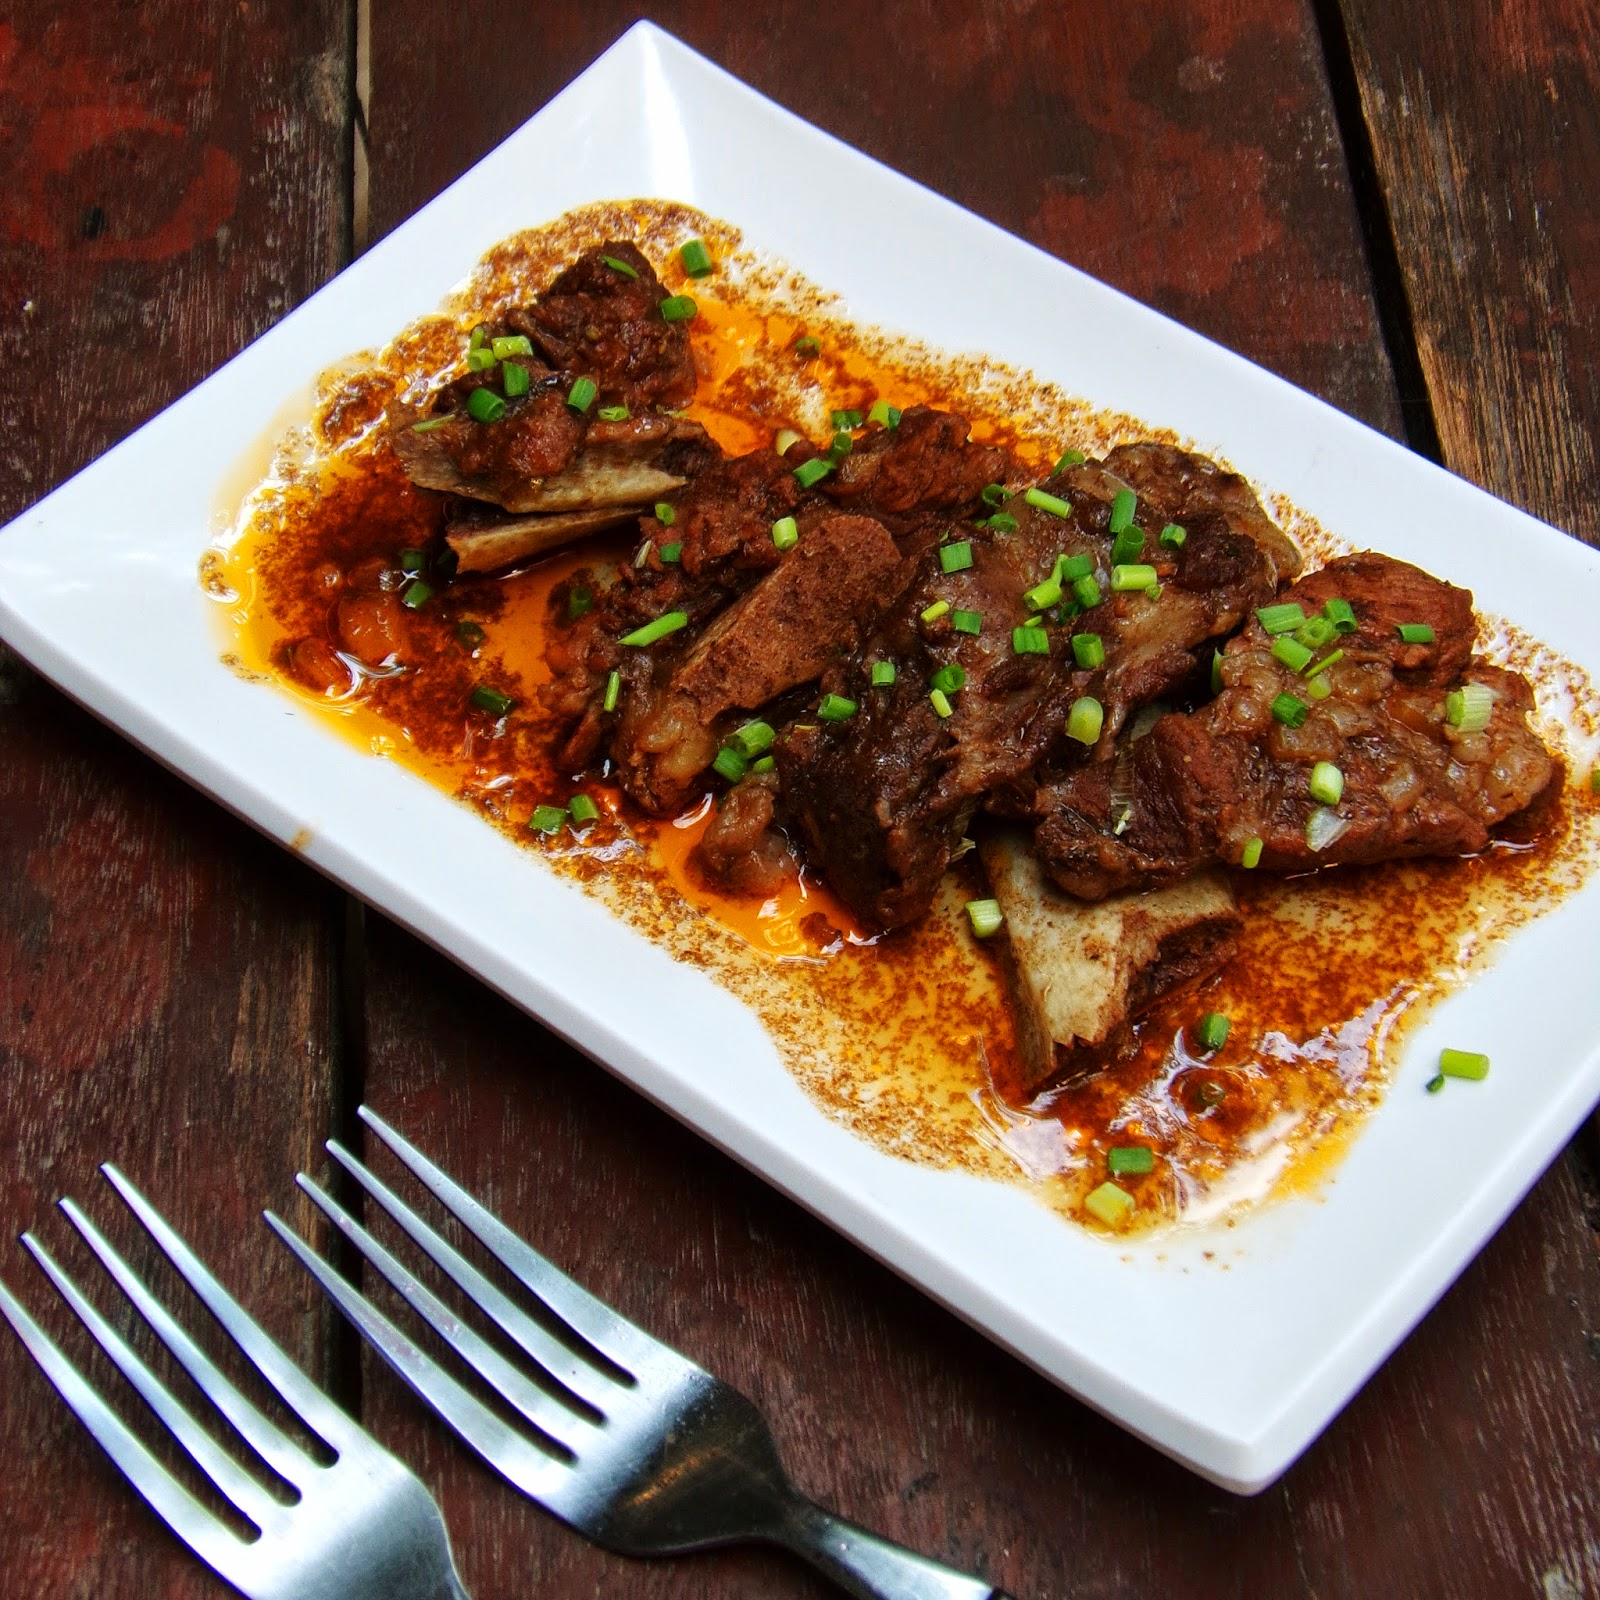 braised pork chops, braised pork ribs recipe, pork rib recipes, pork ribs recipe, pork ribs, pork rib recipe